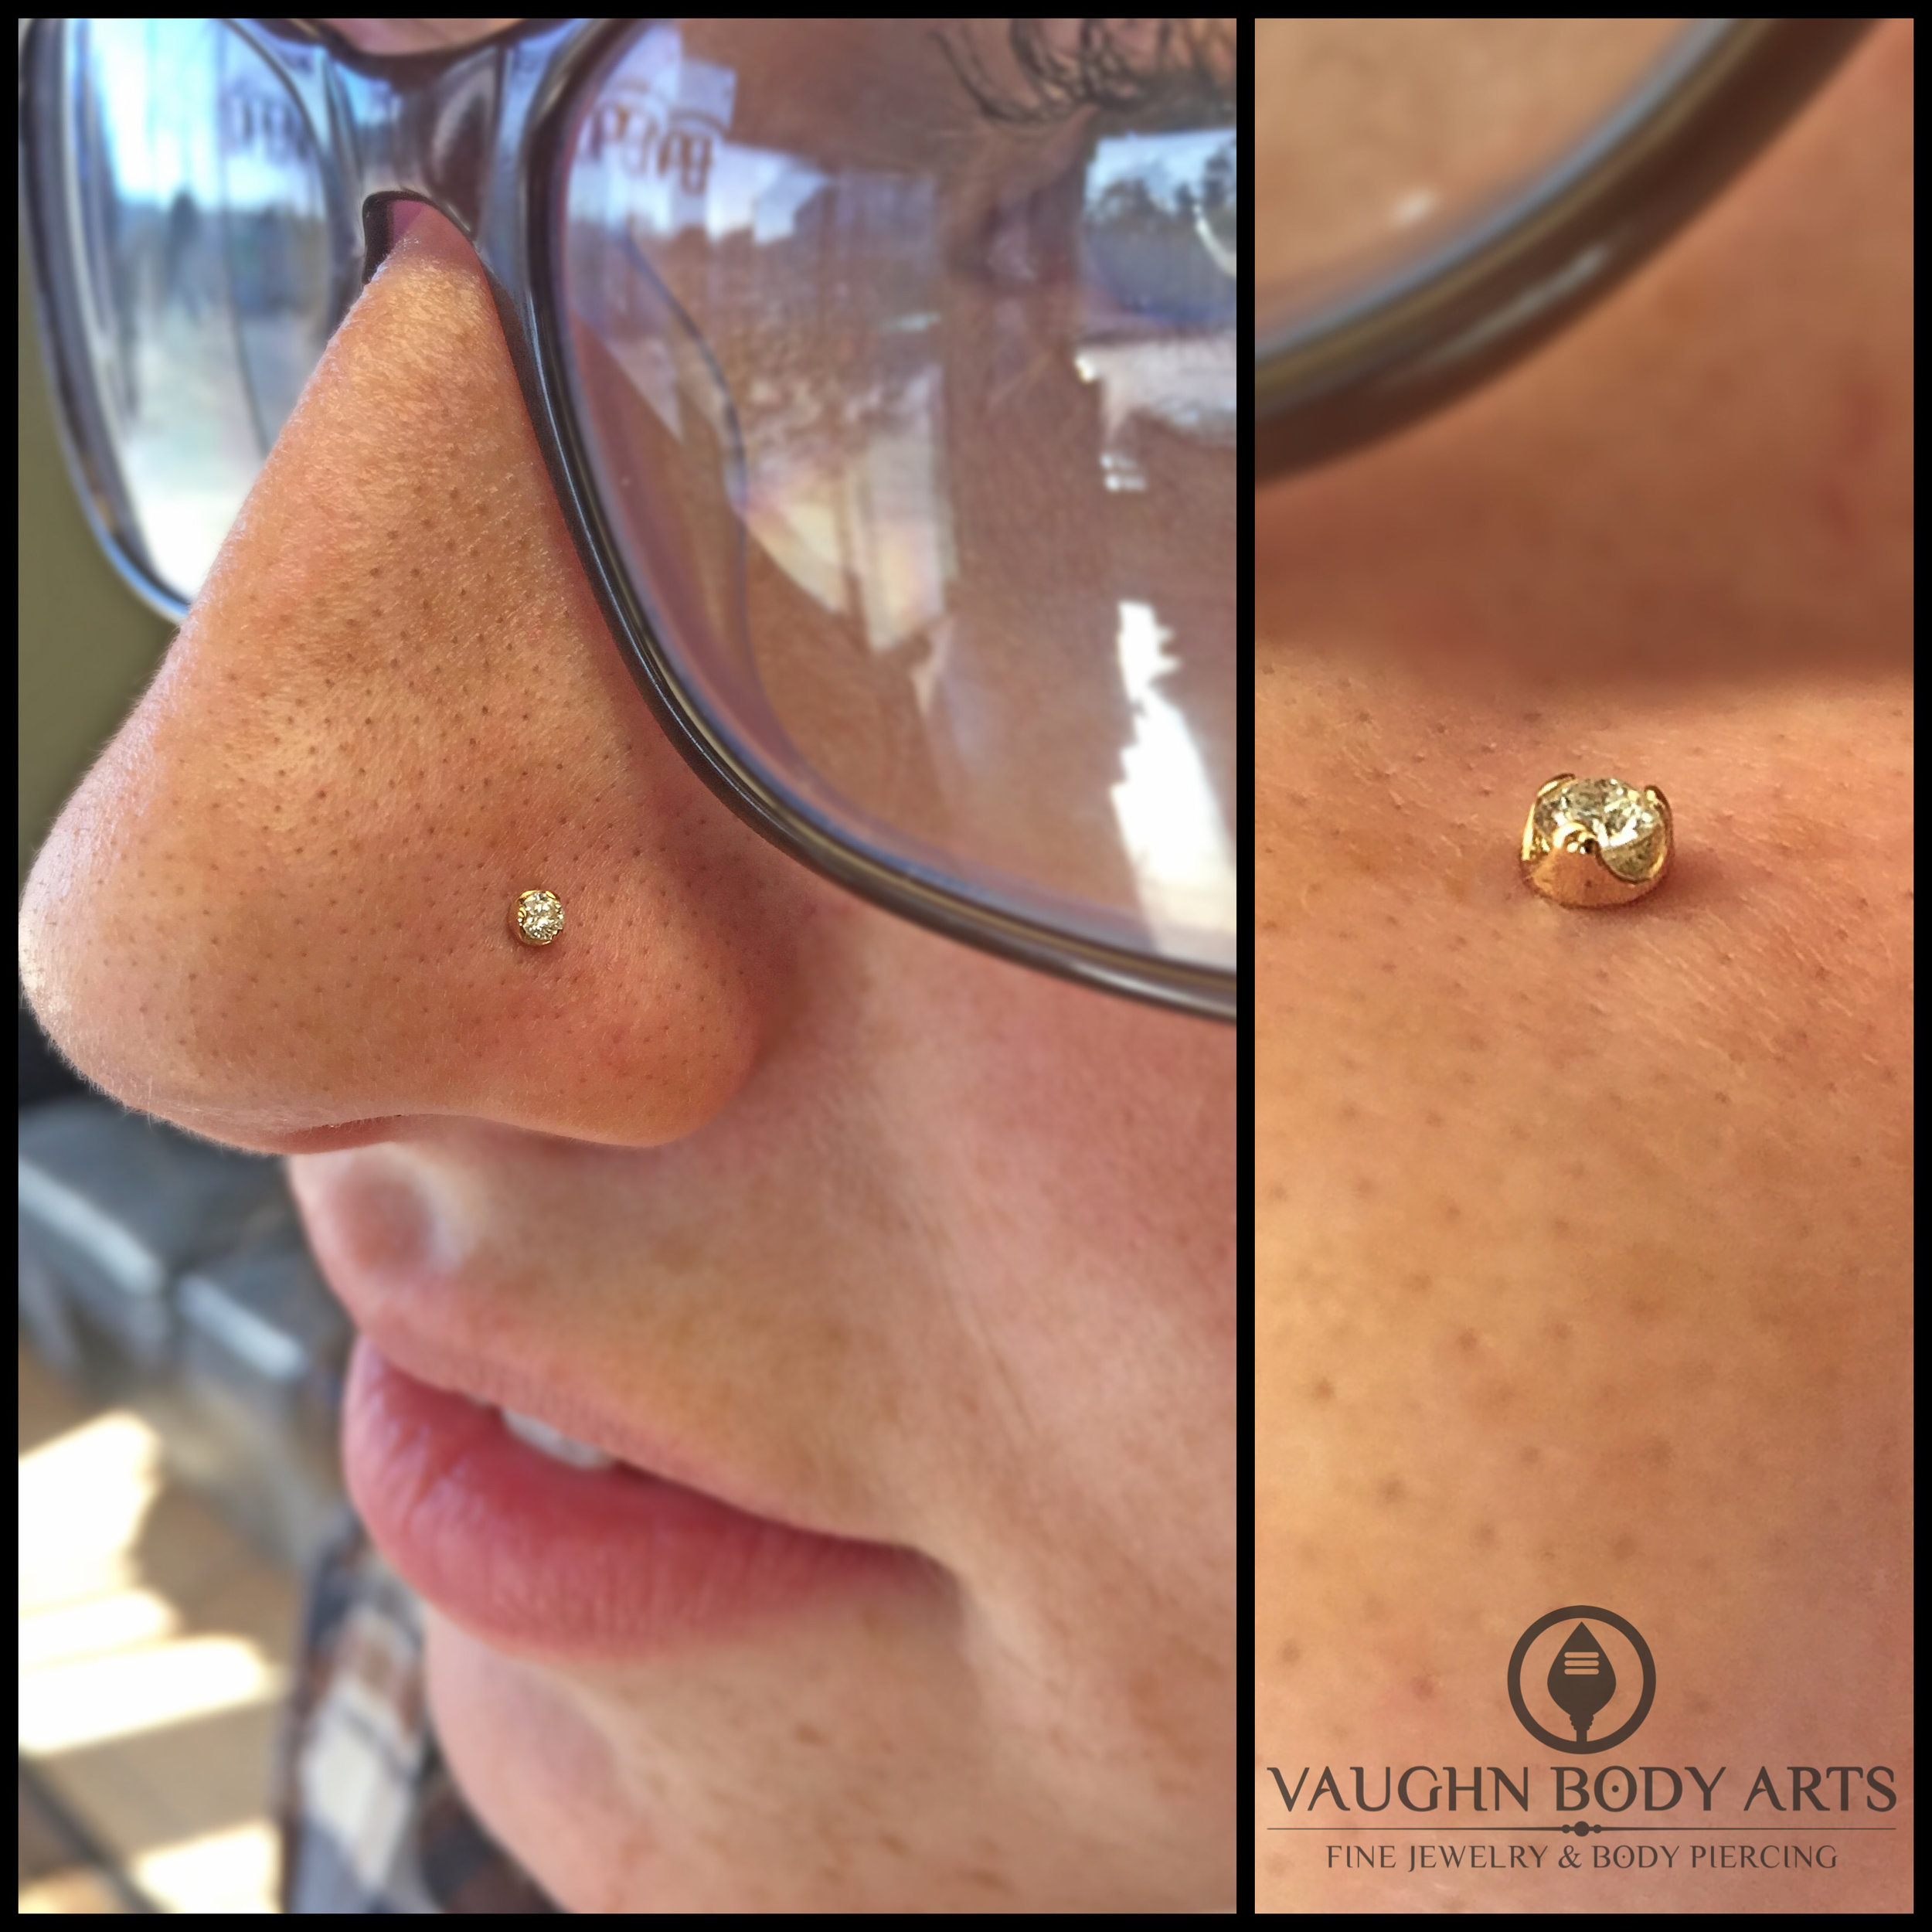 Nostril piercing featuring 18k yellow gold and genuine diamond jewelry from Anatometal.